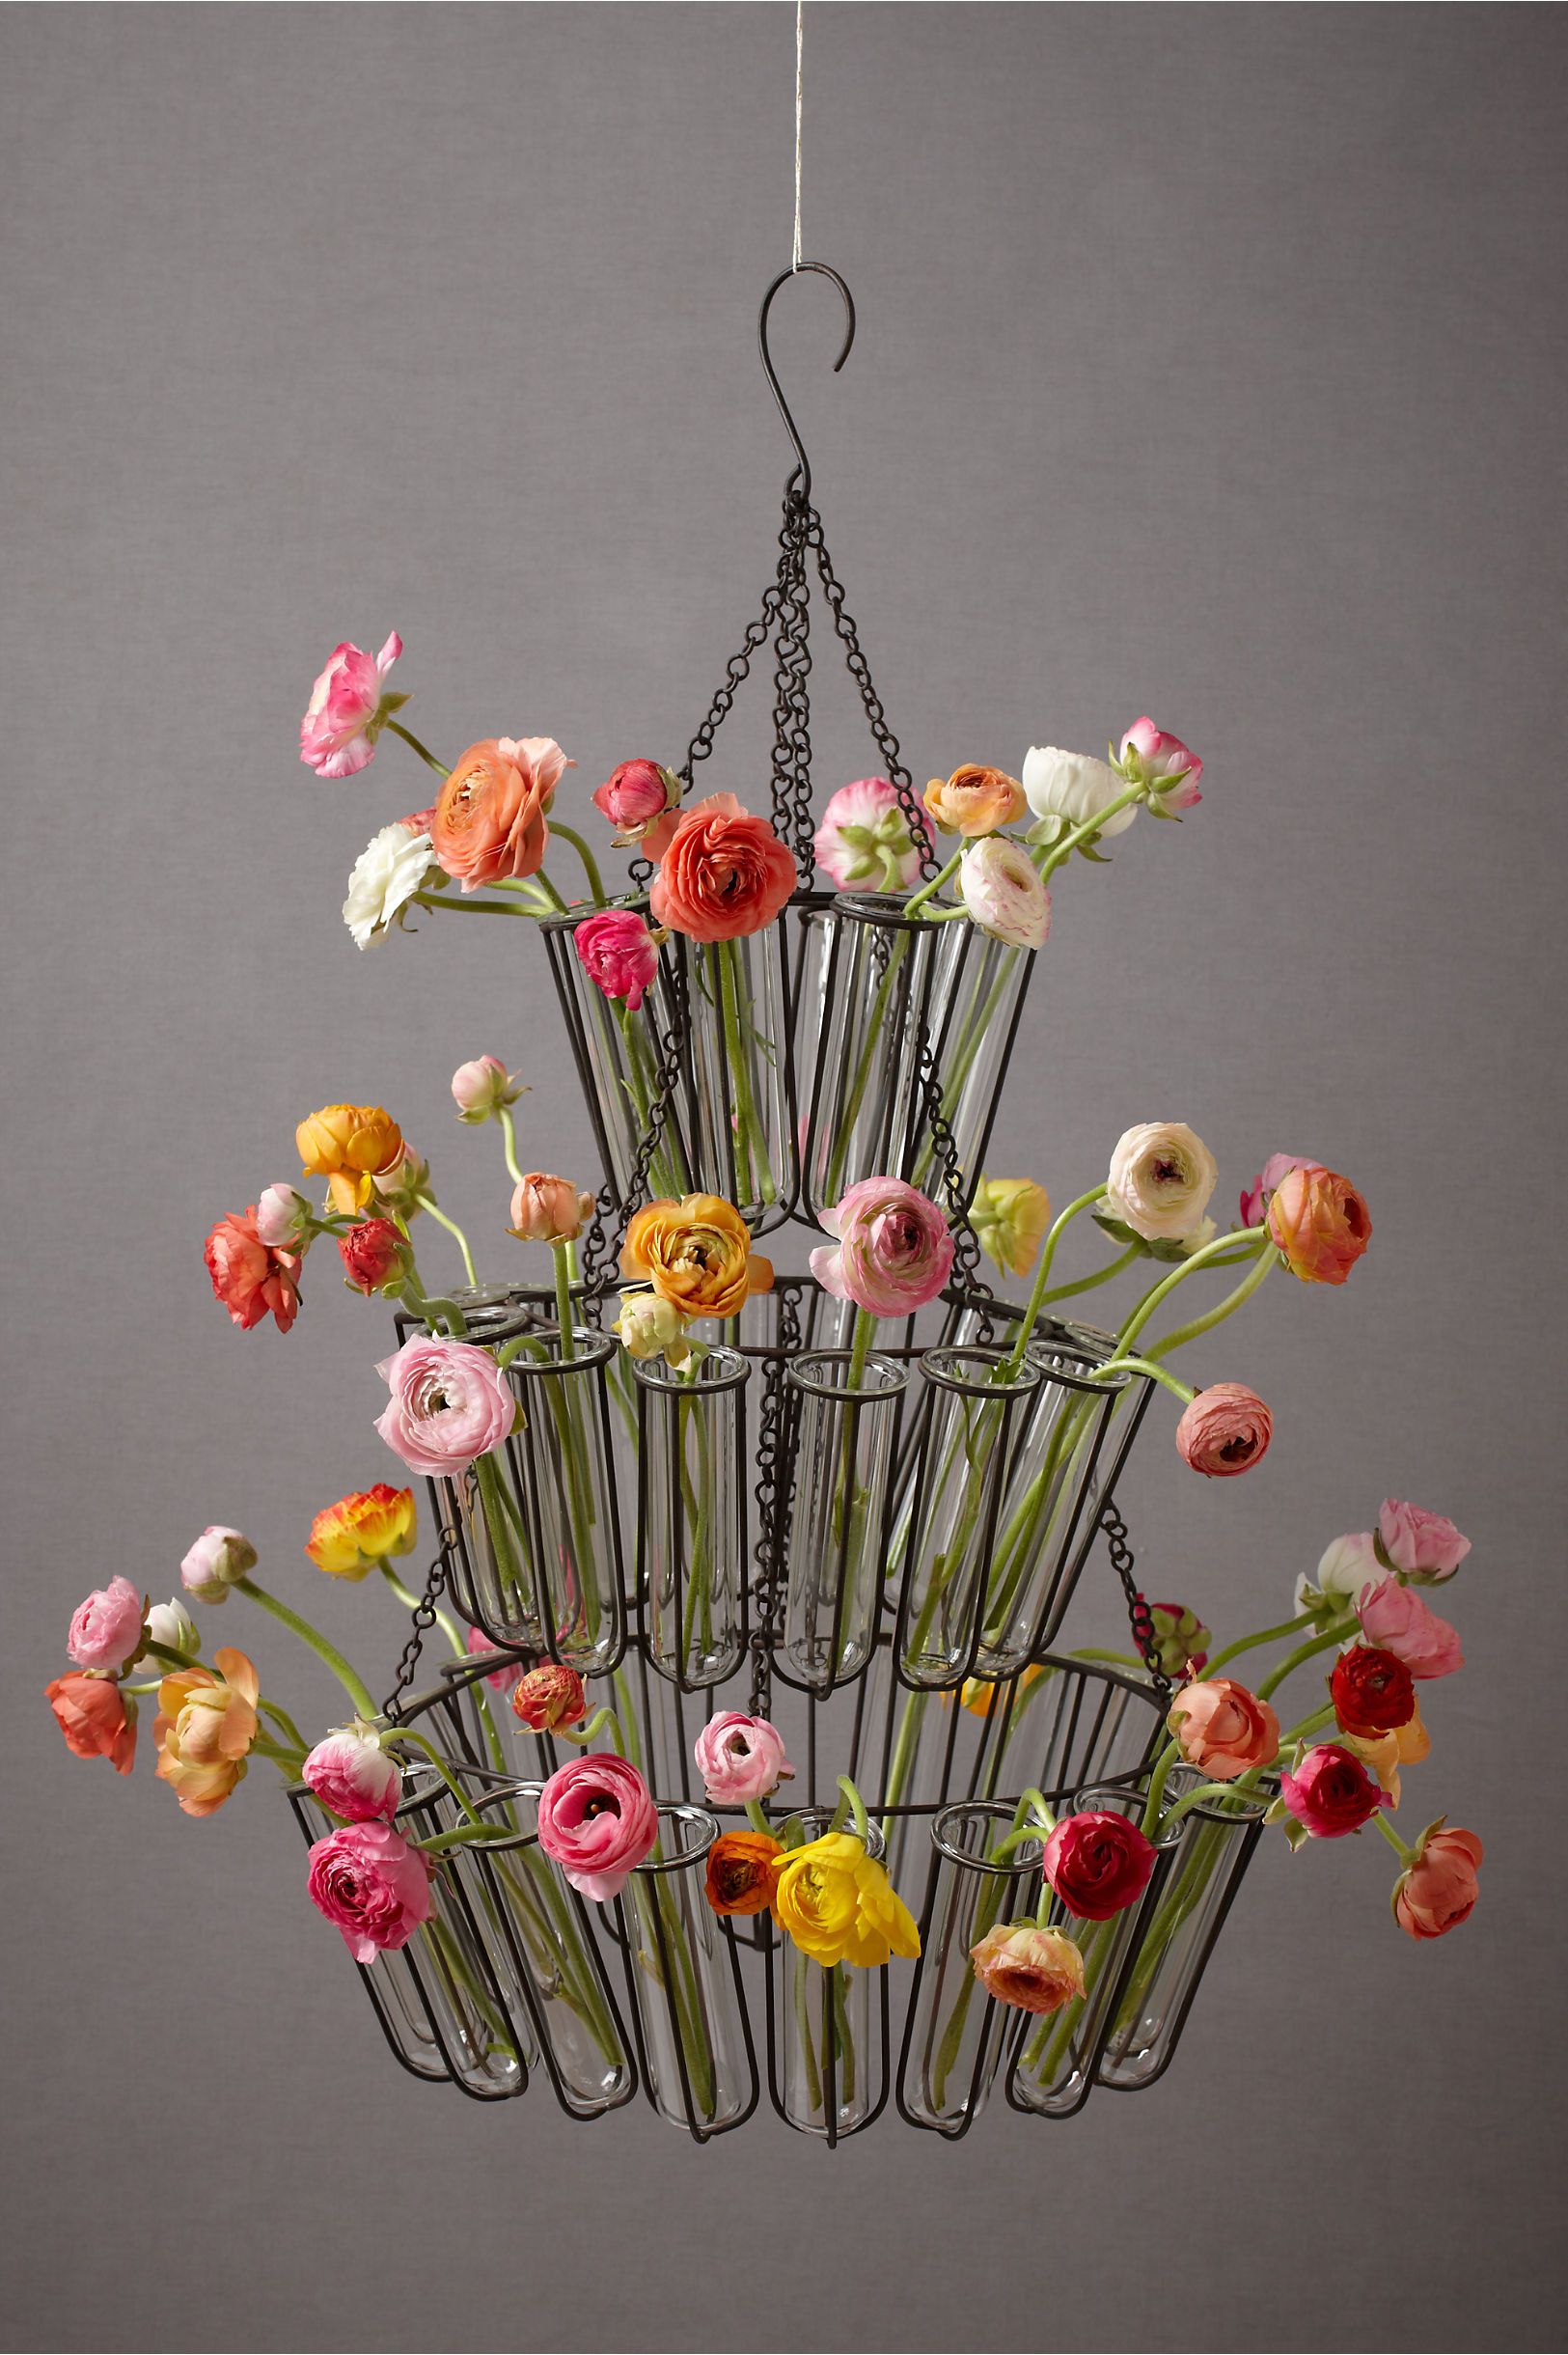 Chandelier With Flowers – thejots